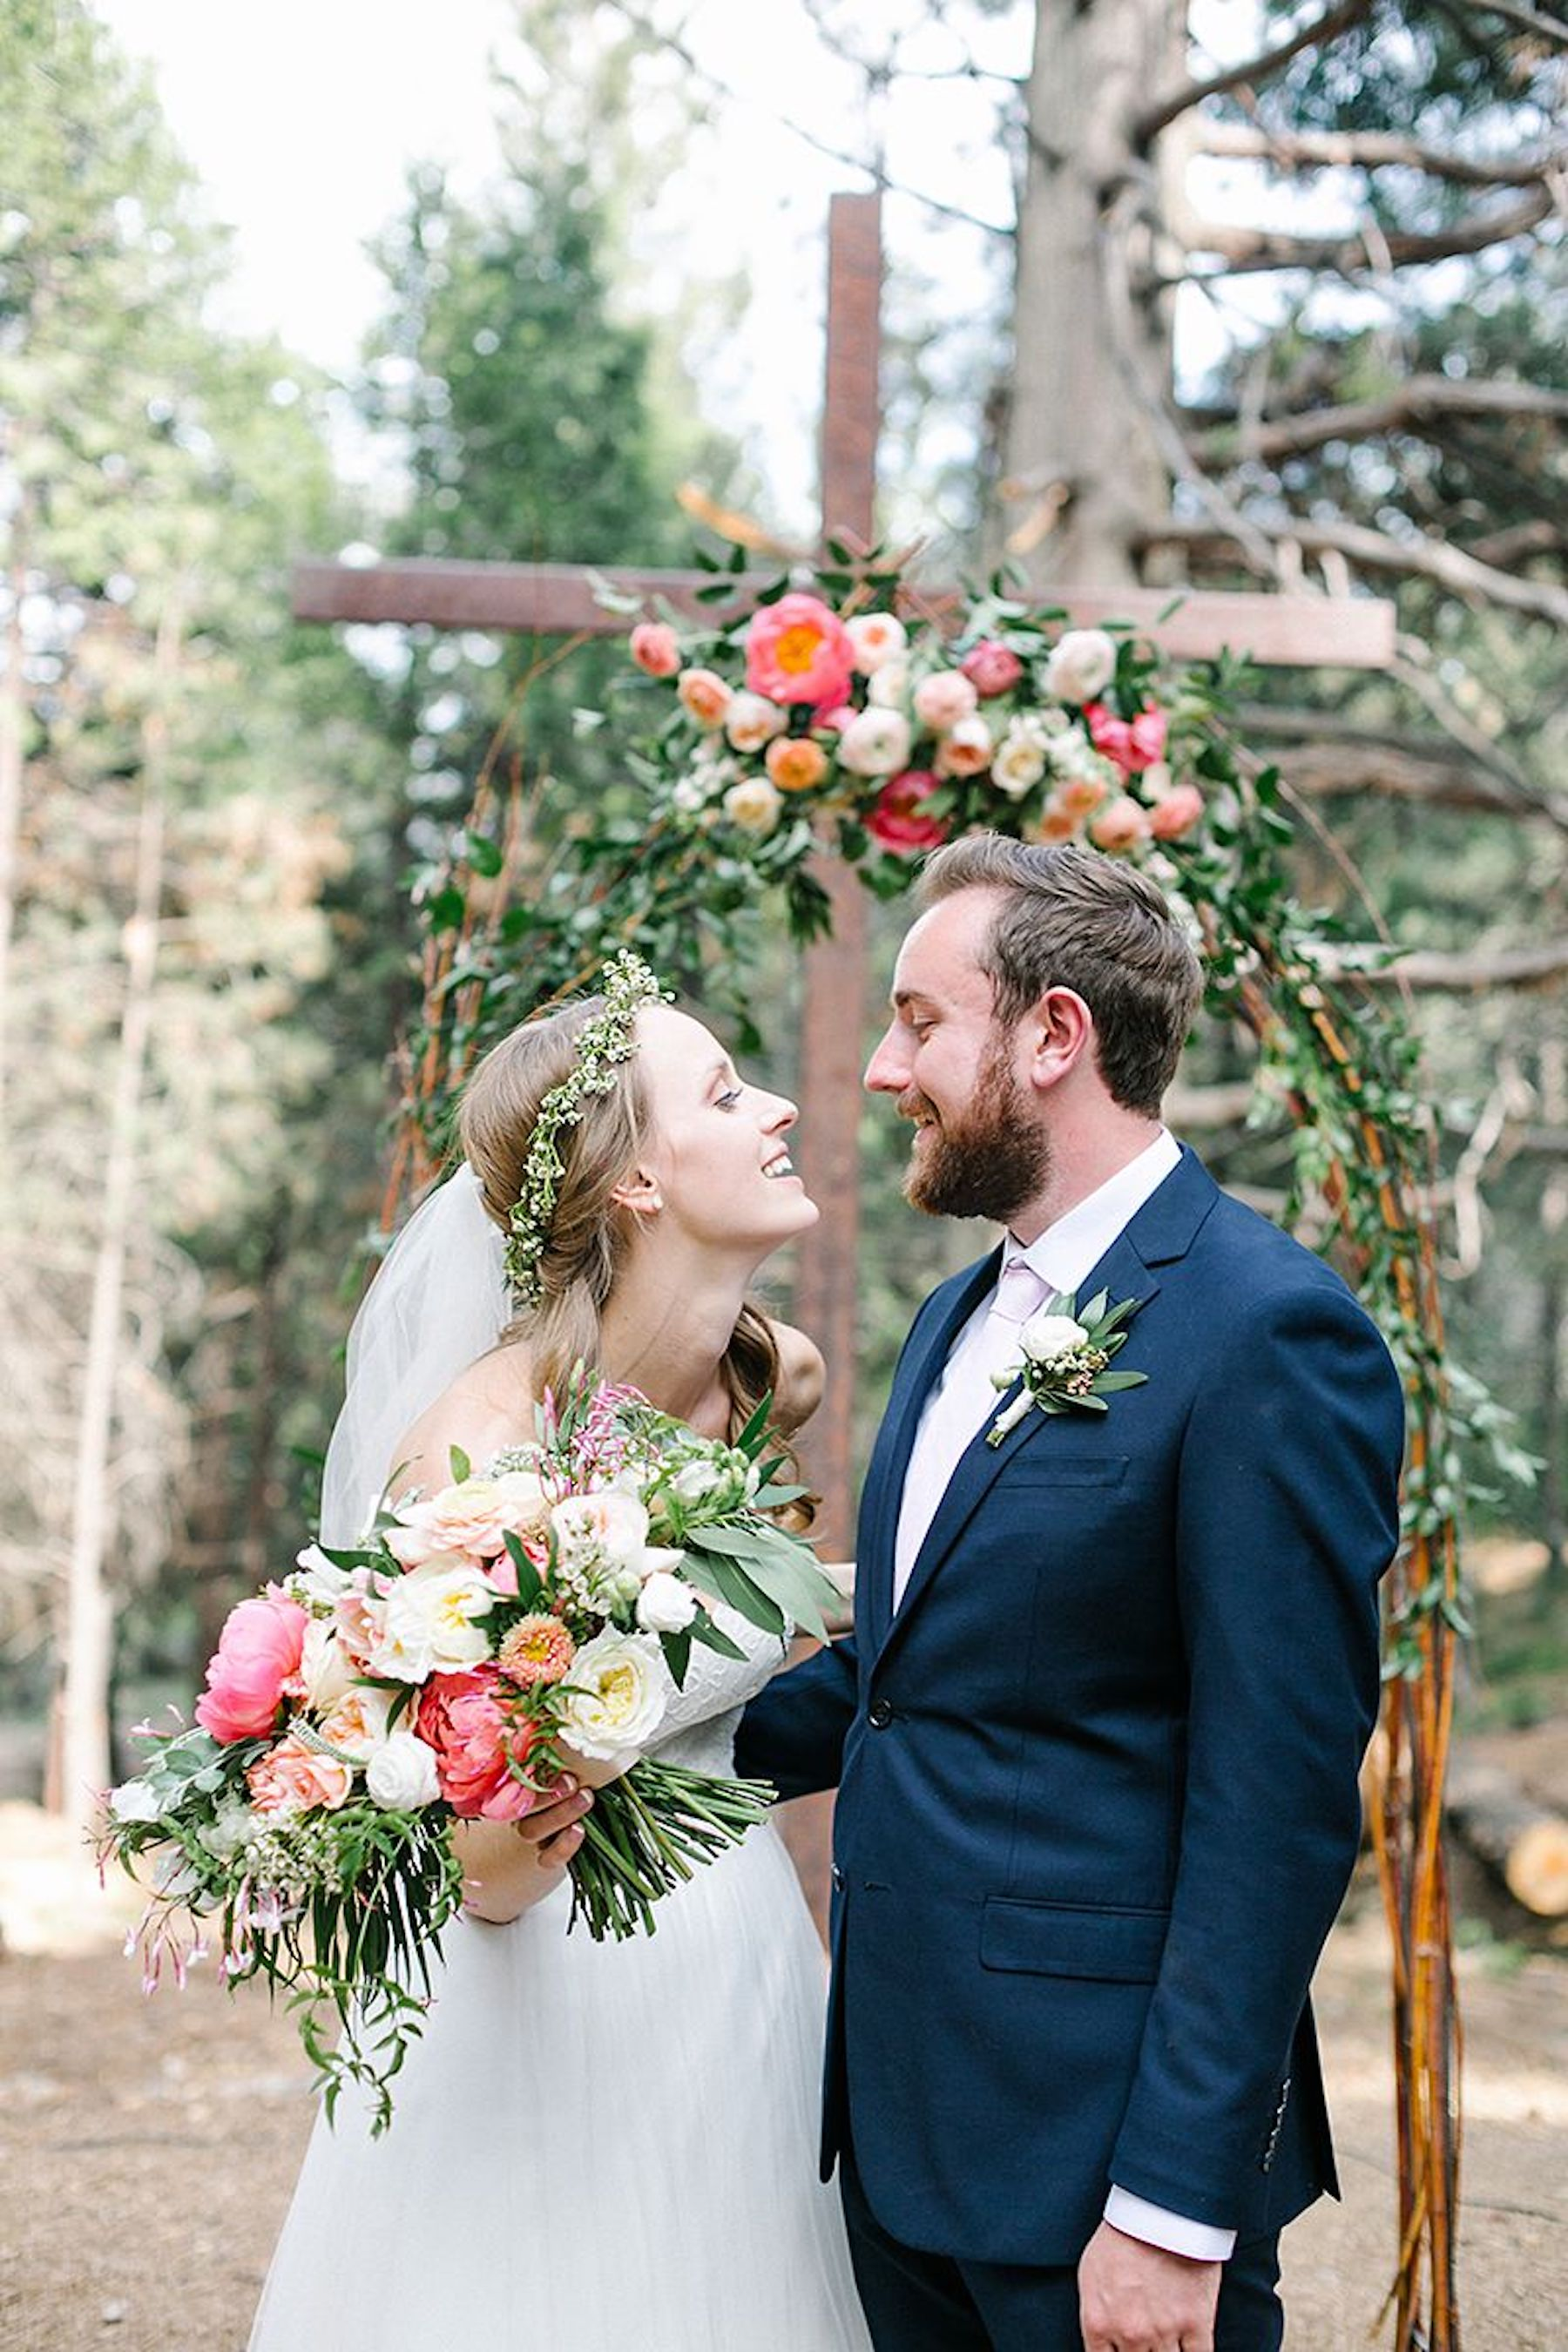 Venue- Thousand Pines, Crestline Ca; Photographer- Like Morning Sun; Florals- Bloomwell and Company; Caterer- Lucilles BBQ